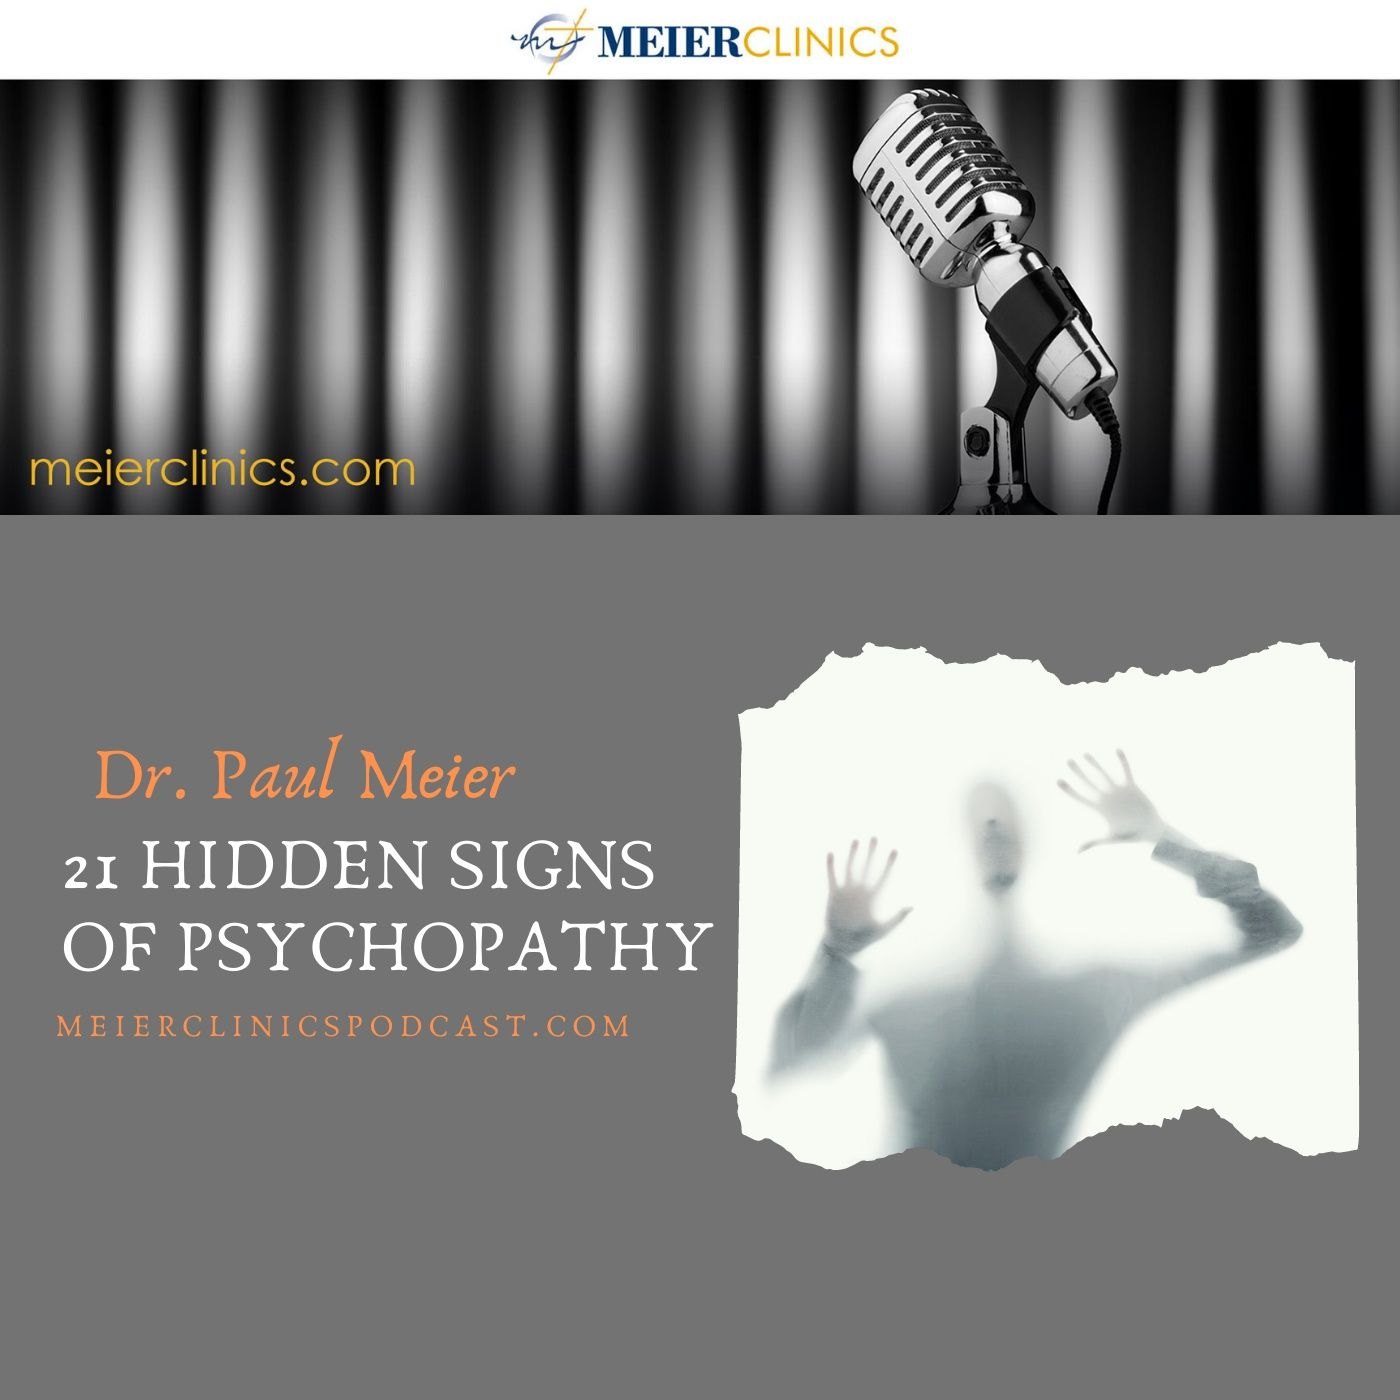 21 Hidden Signs of Psychopathy with Dr. Paul Meier